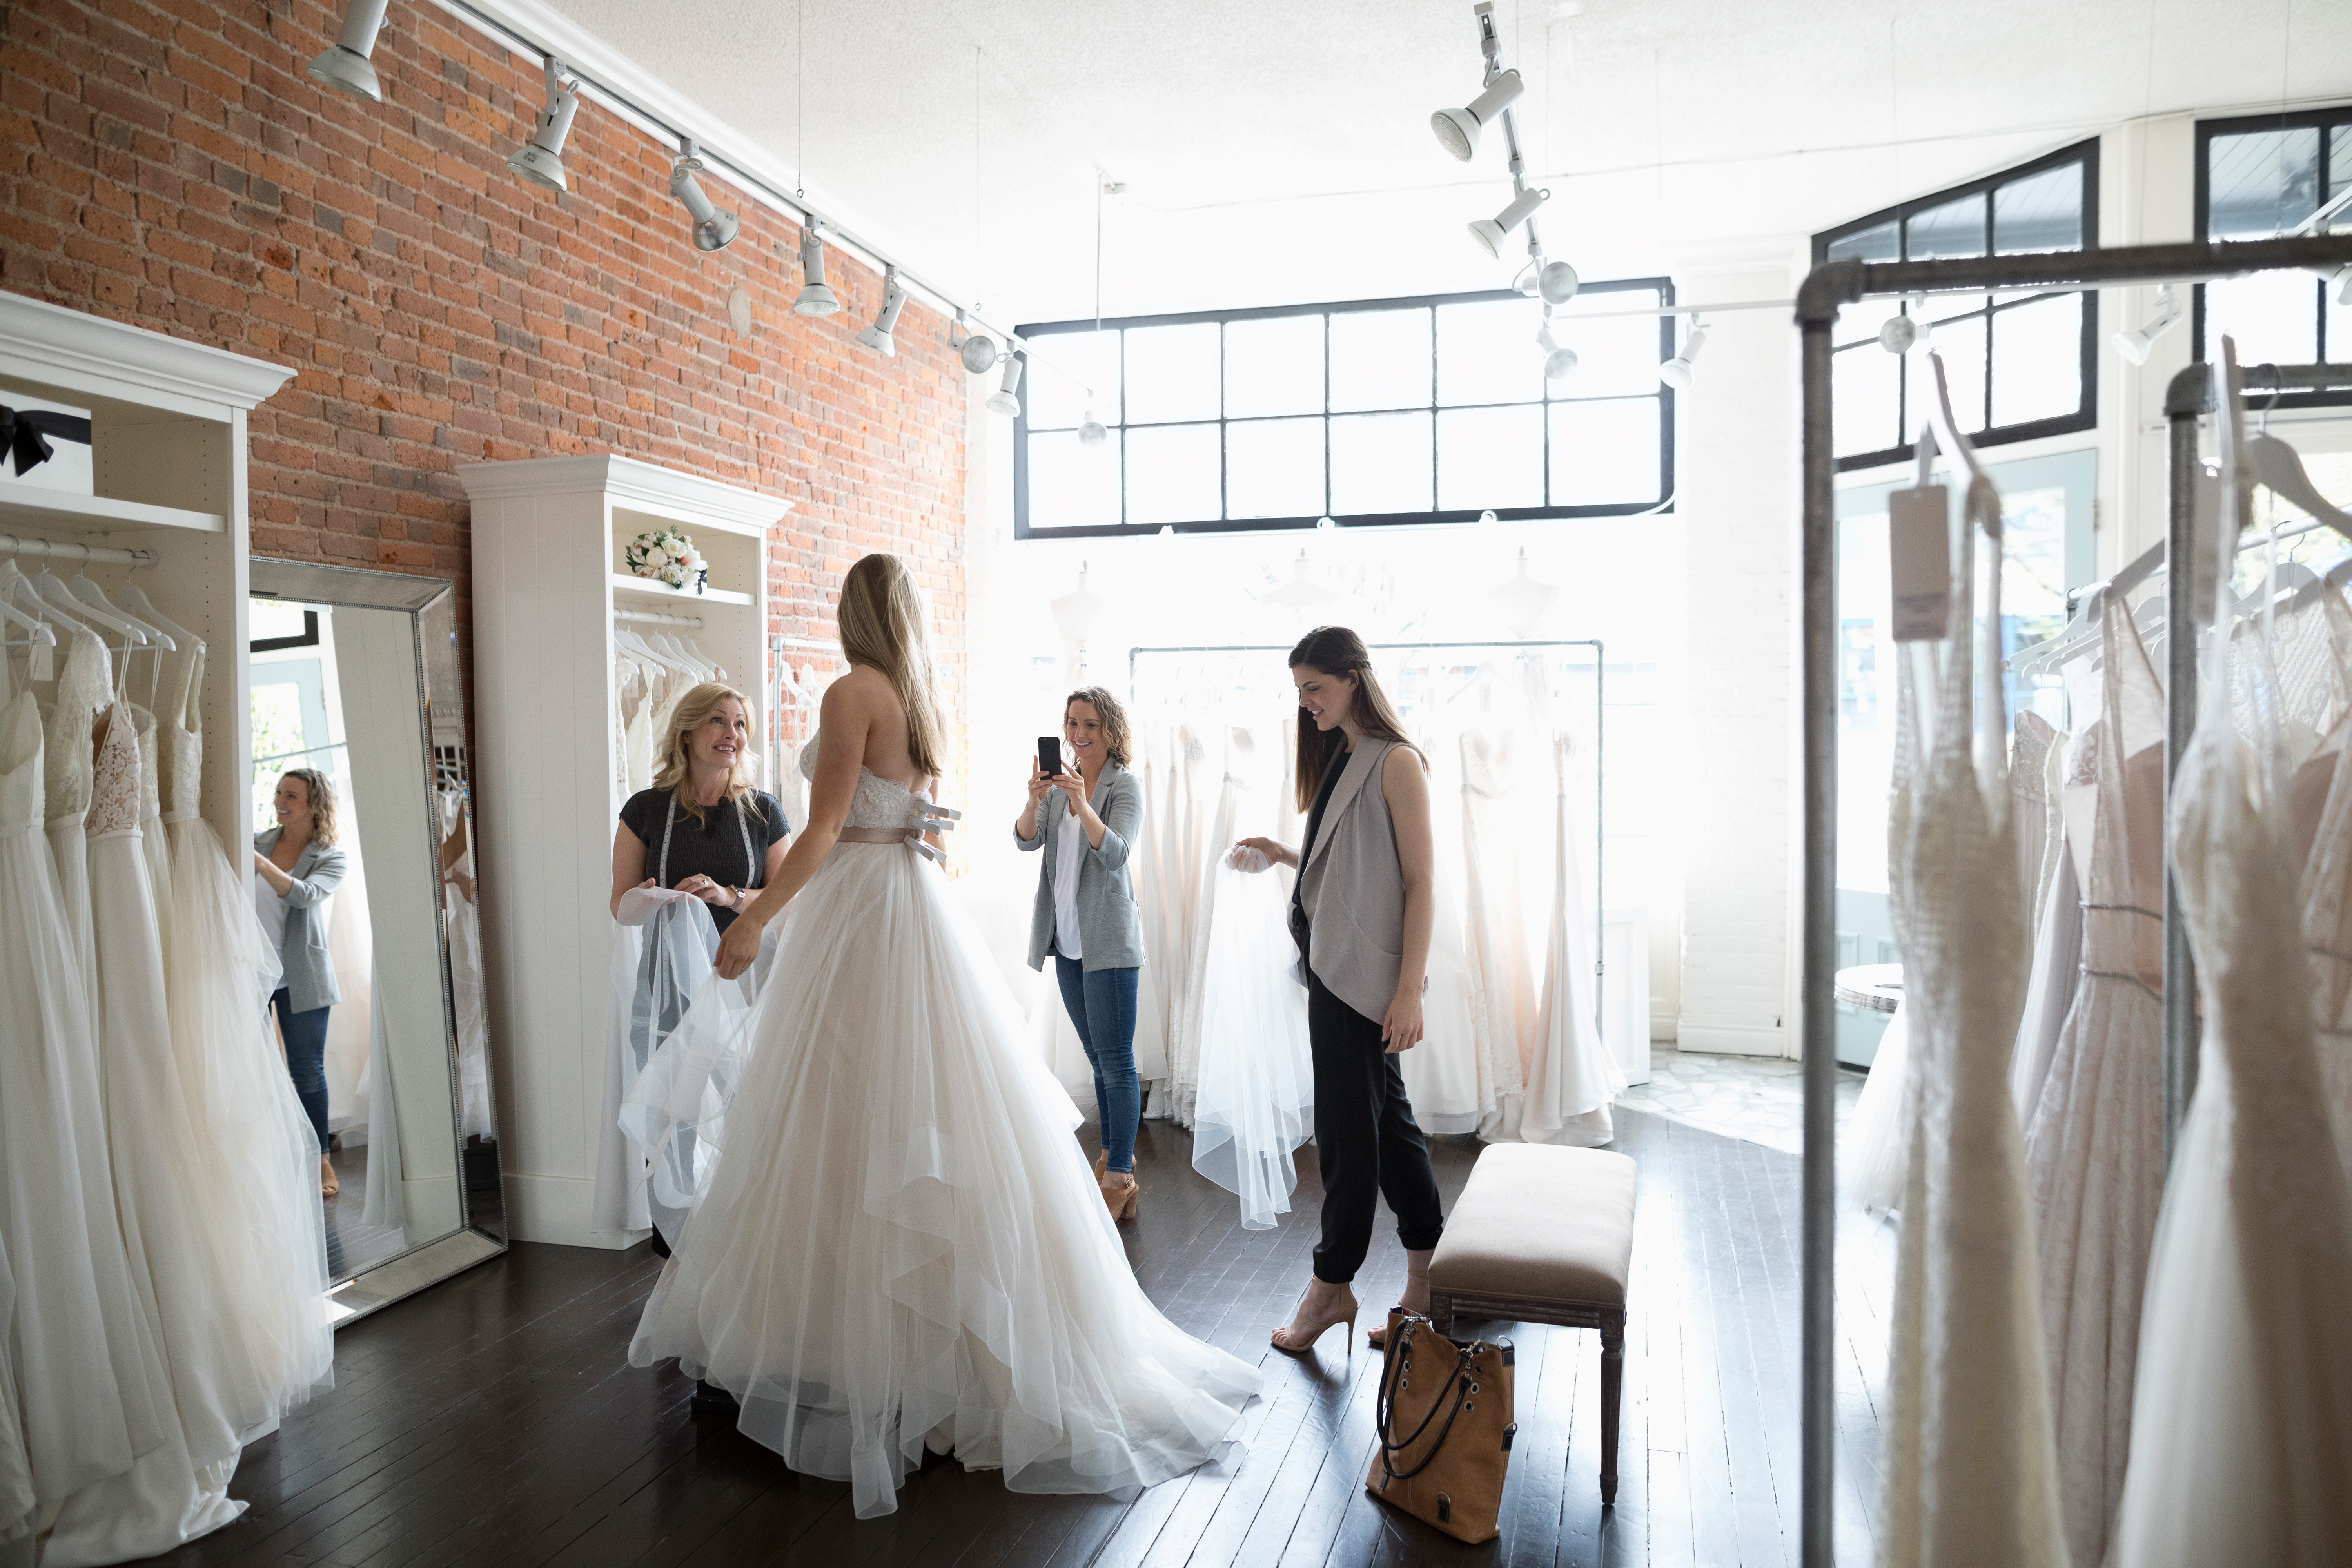 What Happens If Your Wedding Dress Doesn't Fit During the Final Fitting?